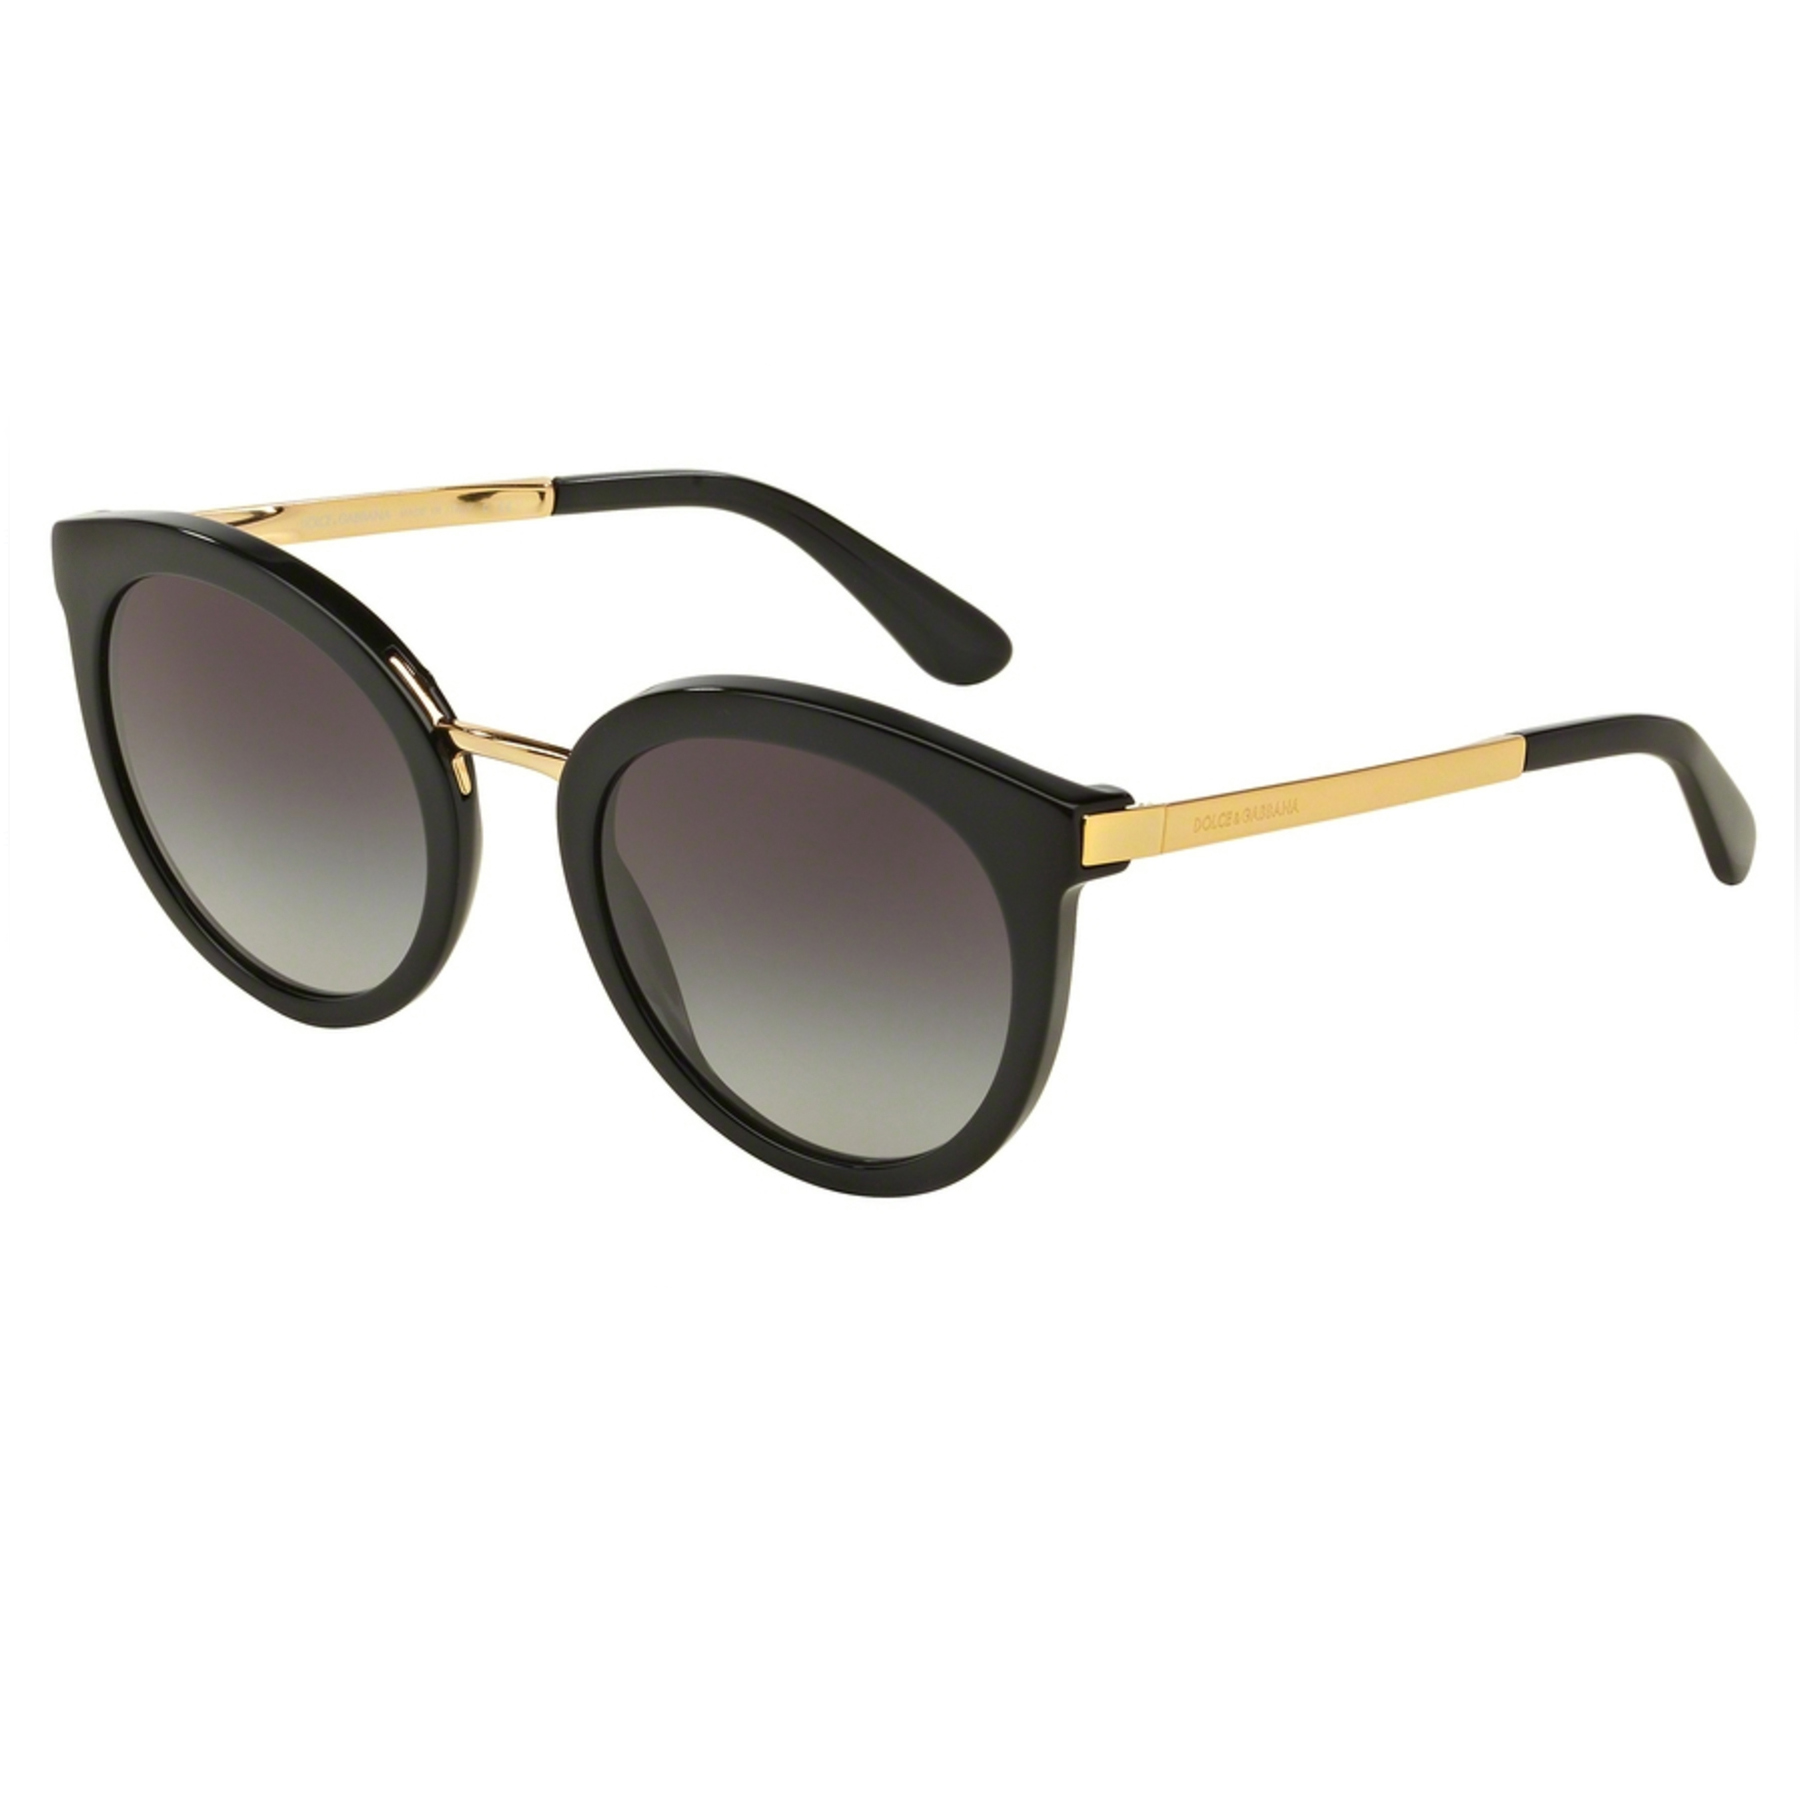 Sunglass Outlet Online Store